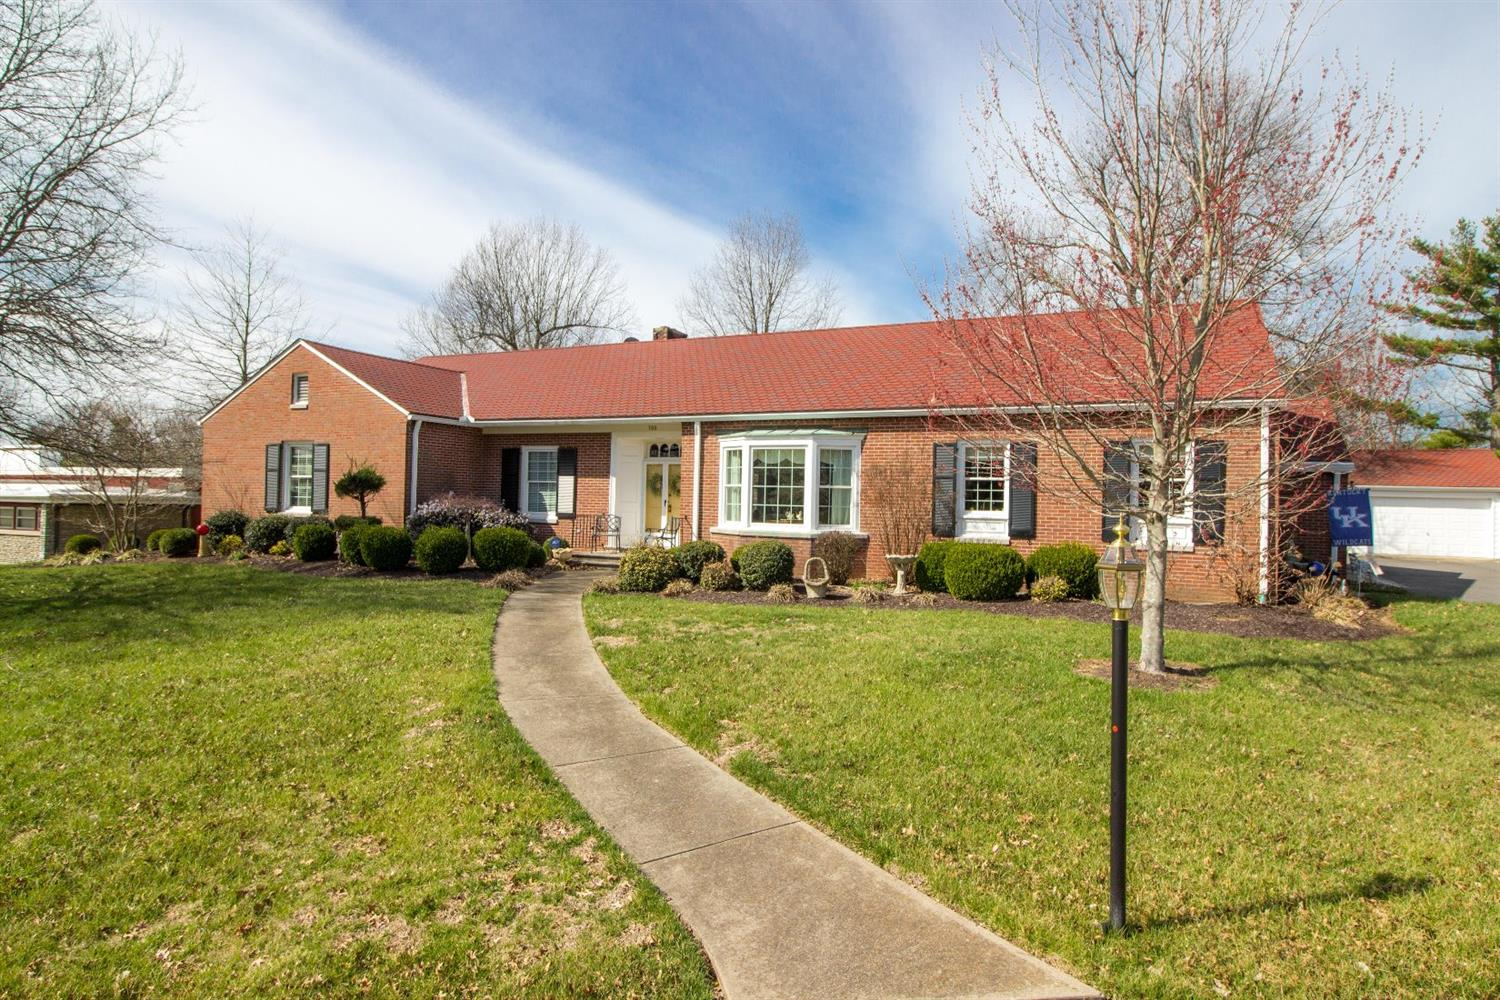 Home For Sale at 399 Runyon Rd, Harrodsburg, KY 40330